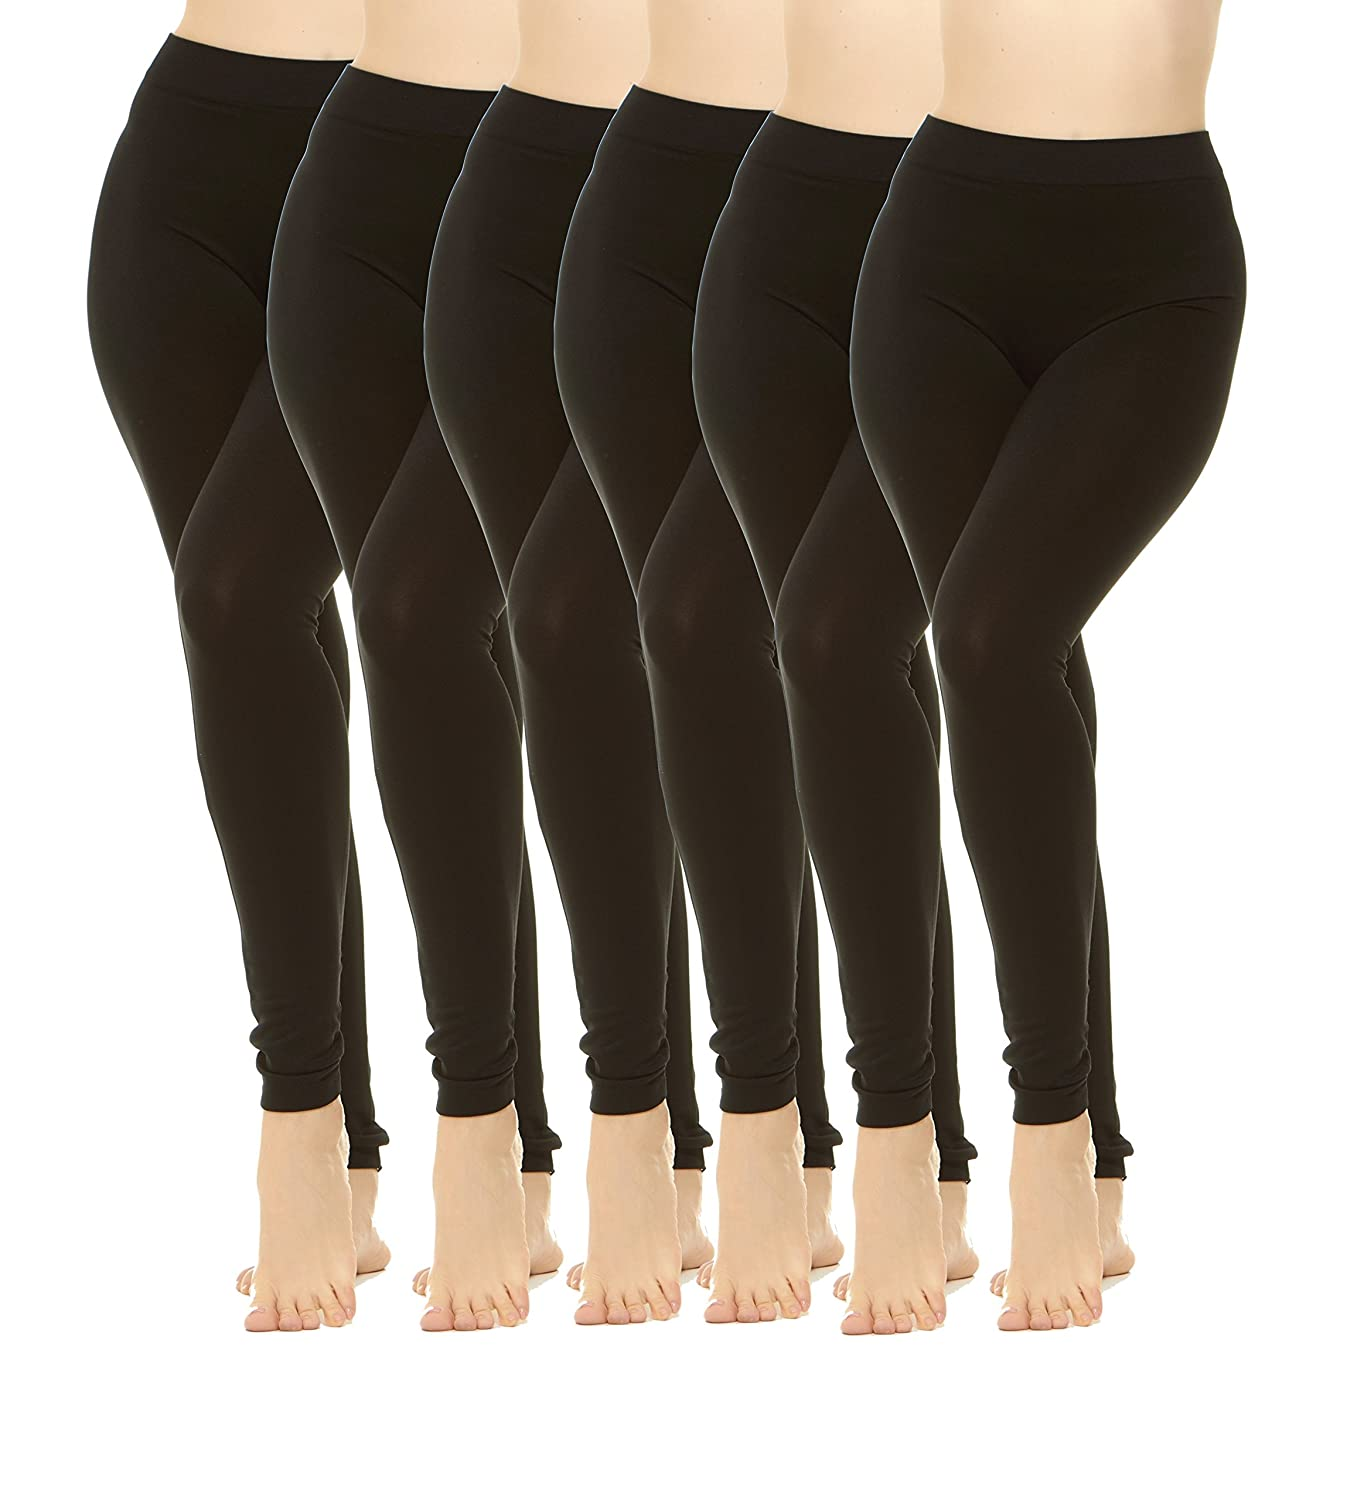 a4e64f8ce1c0c5 NON FLEECE LINED, tummy control, soft woman leggings, high waist leggings,  comes in black, brown, navy, and a variety of other colors, stretch leggings  for ...